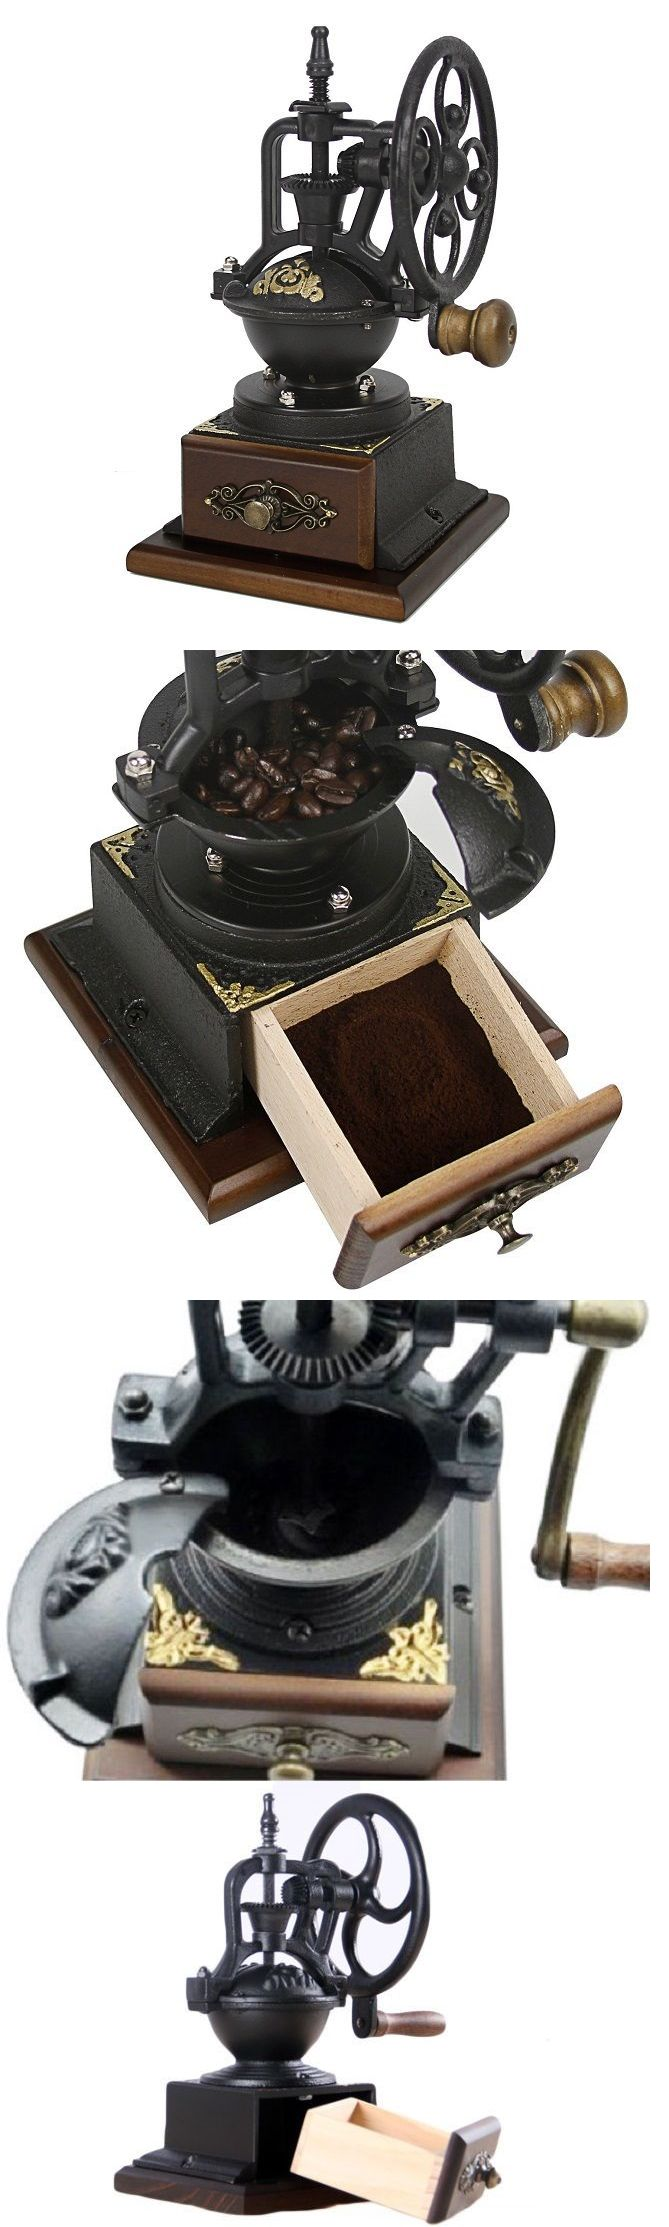 Coffee Grinders 32882: Small Coffee Maker Grinder Old Fashioned Whole Bean Manual Hand Held Crank Mill -> BUY IT NOW ONLY: $54.49 on eBay!